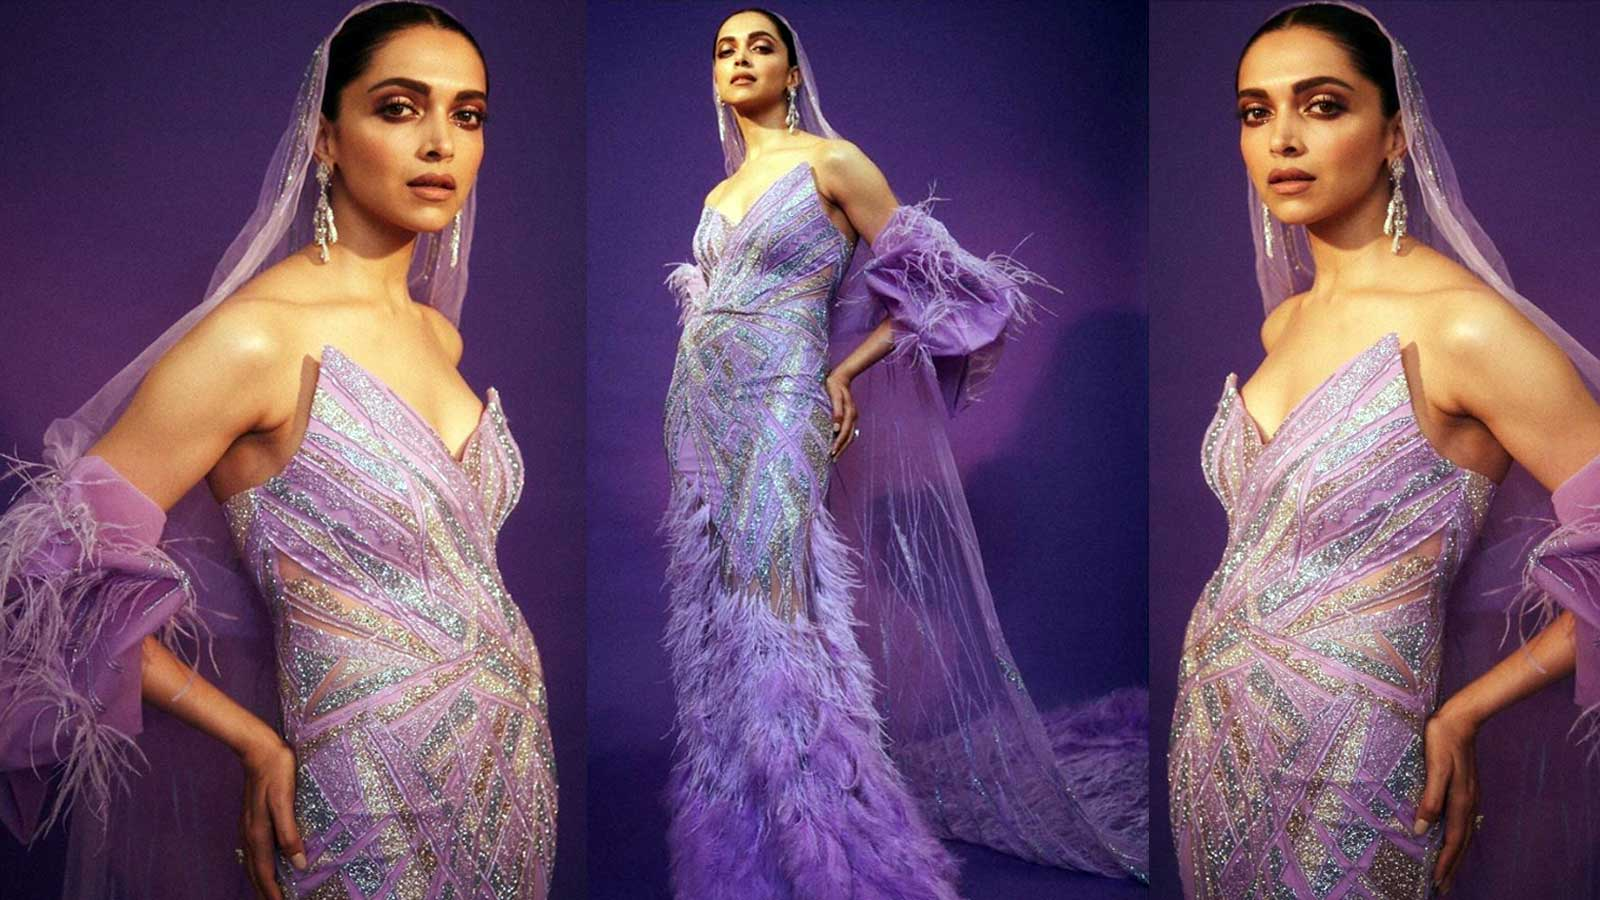 deepika-padukones-latest-pictures-spark-pregnancy-rumours-once-again-fans-congratulate-her